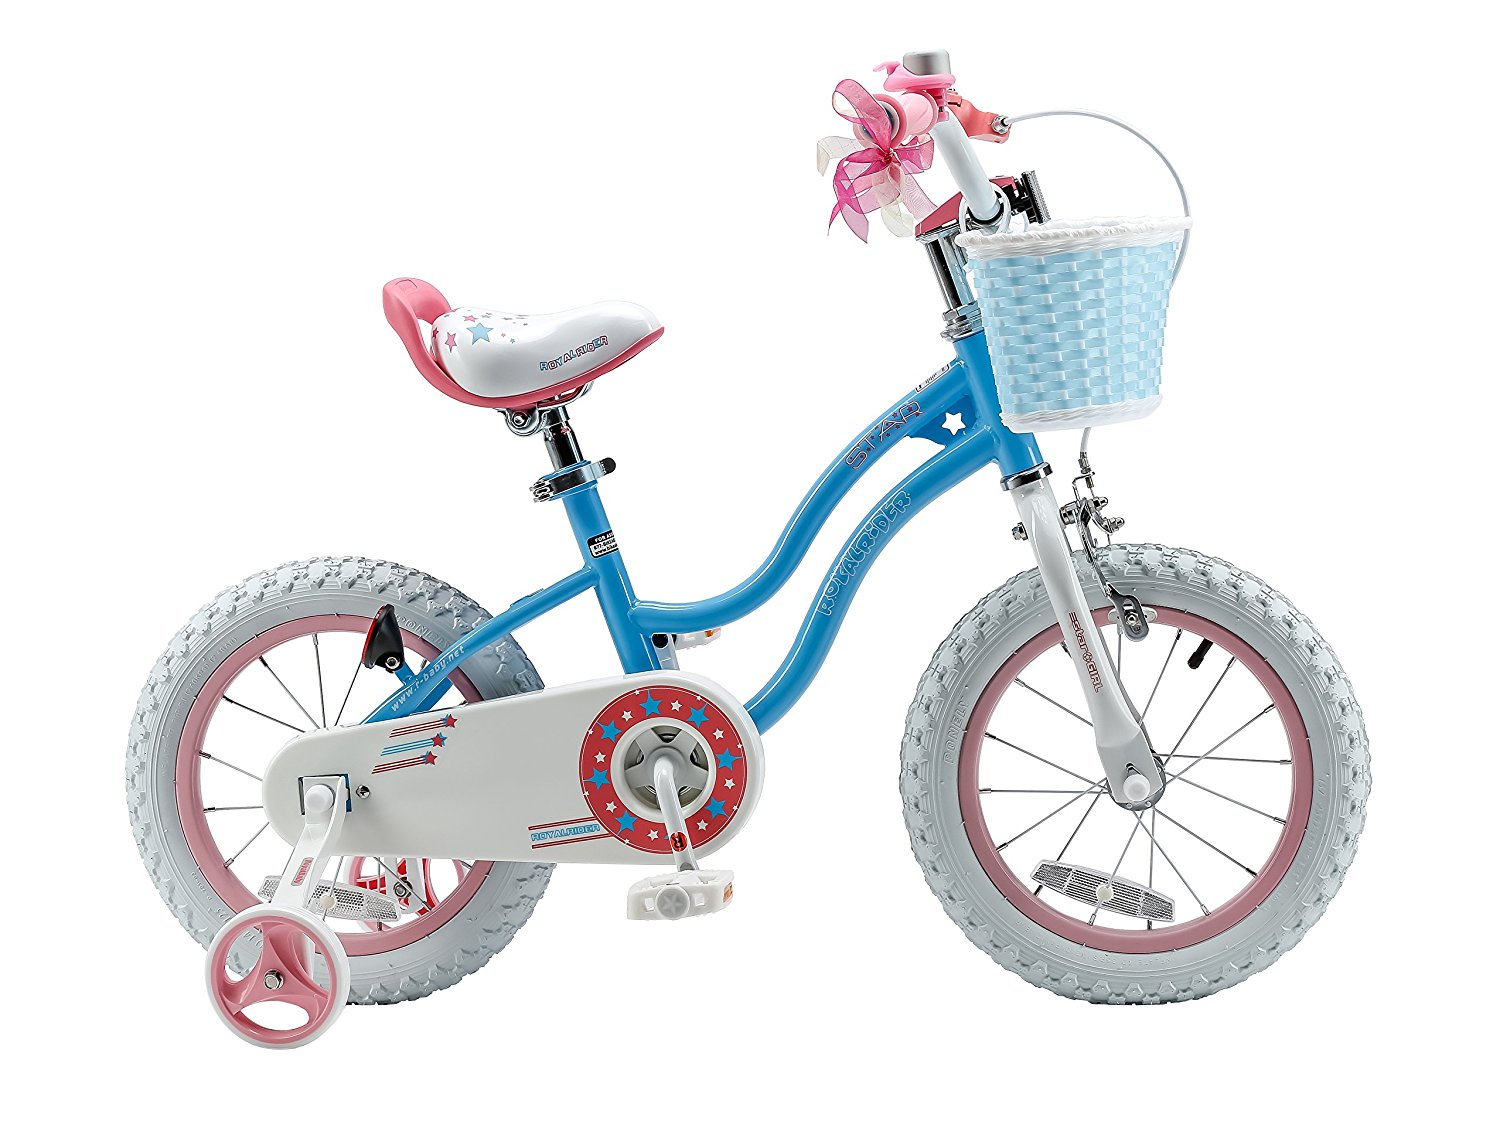 a896b49e7676 Review of RoyalBaby Stargirl Girl's Bike (12-14-16 Inch, Blue /